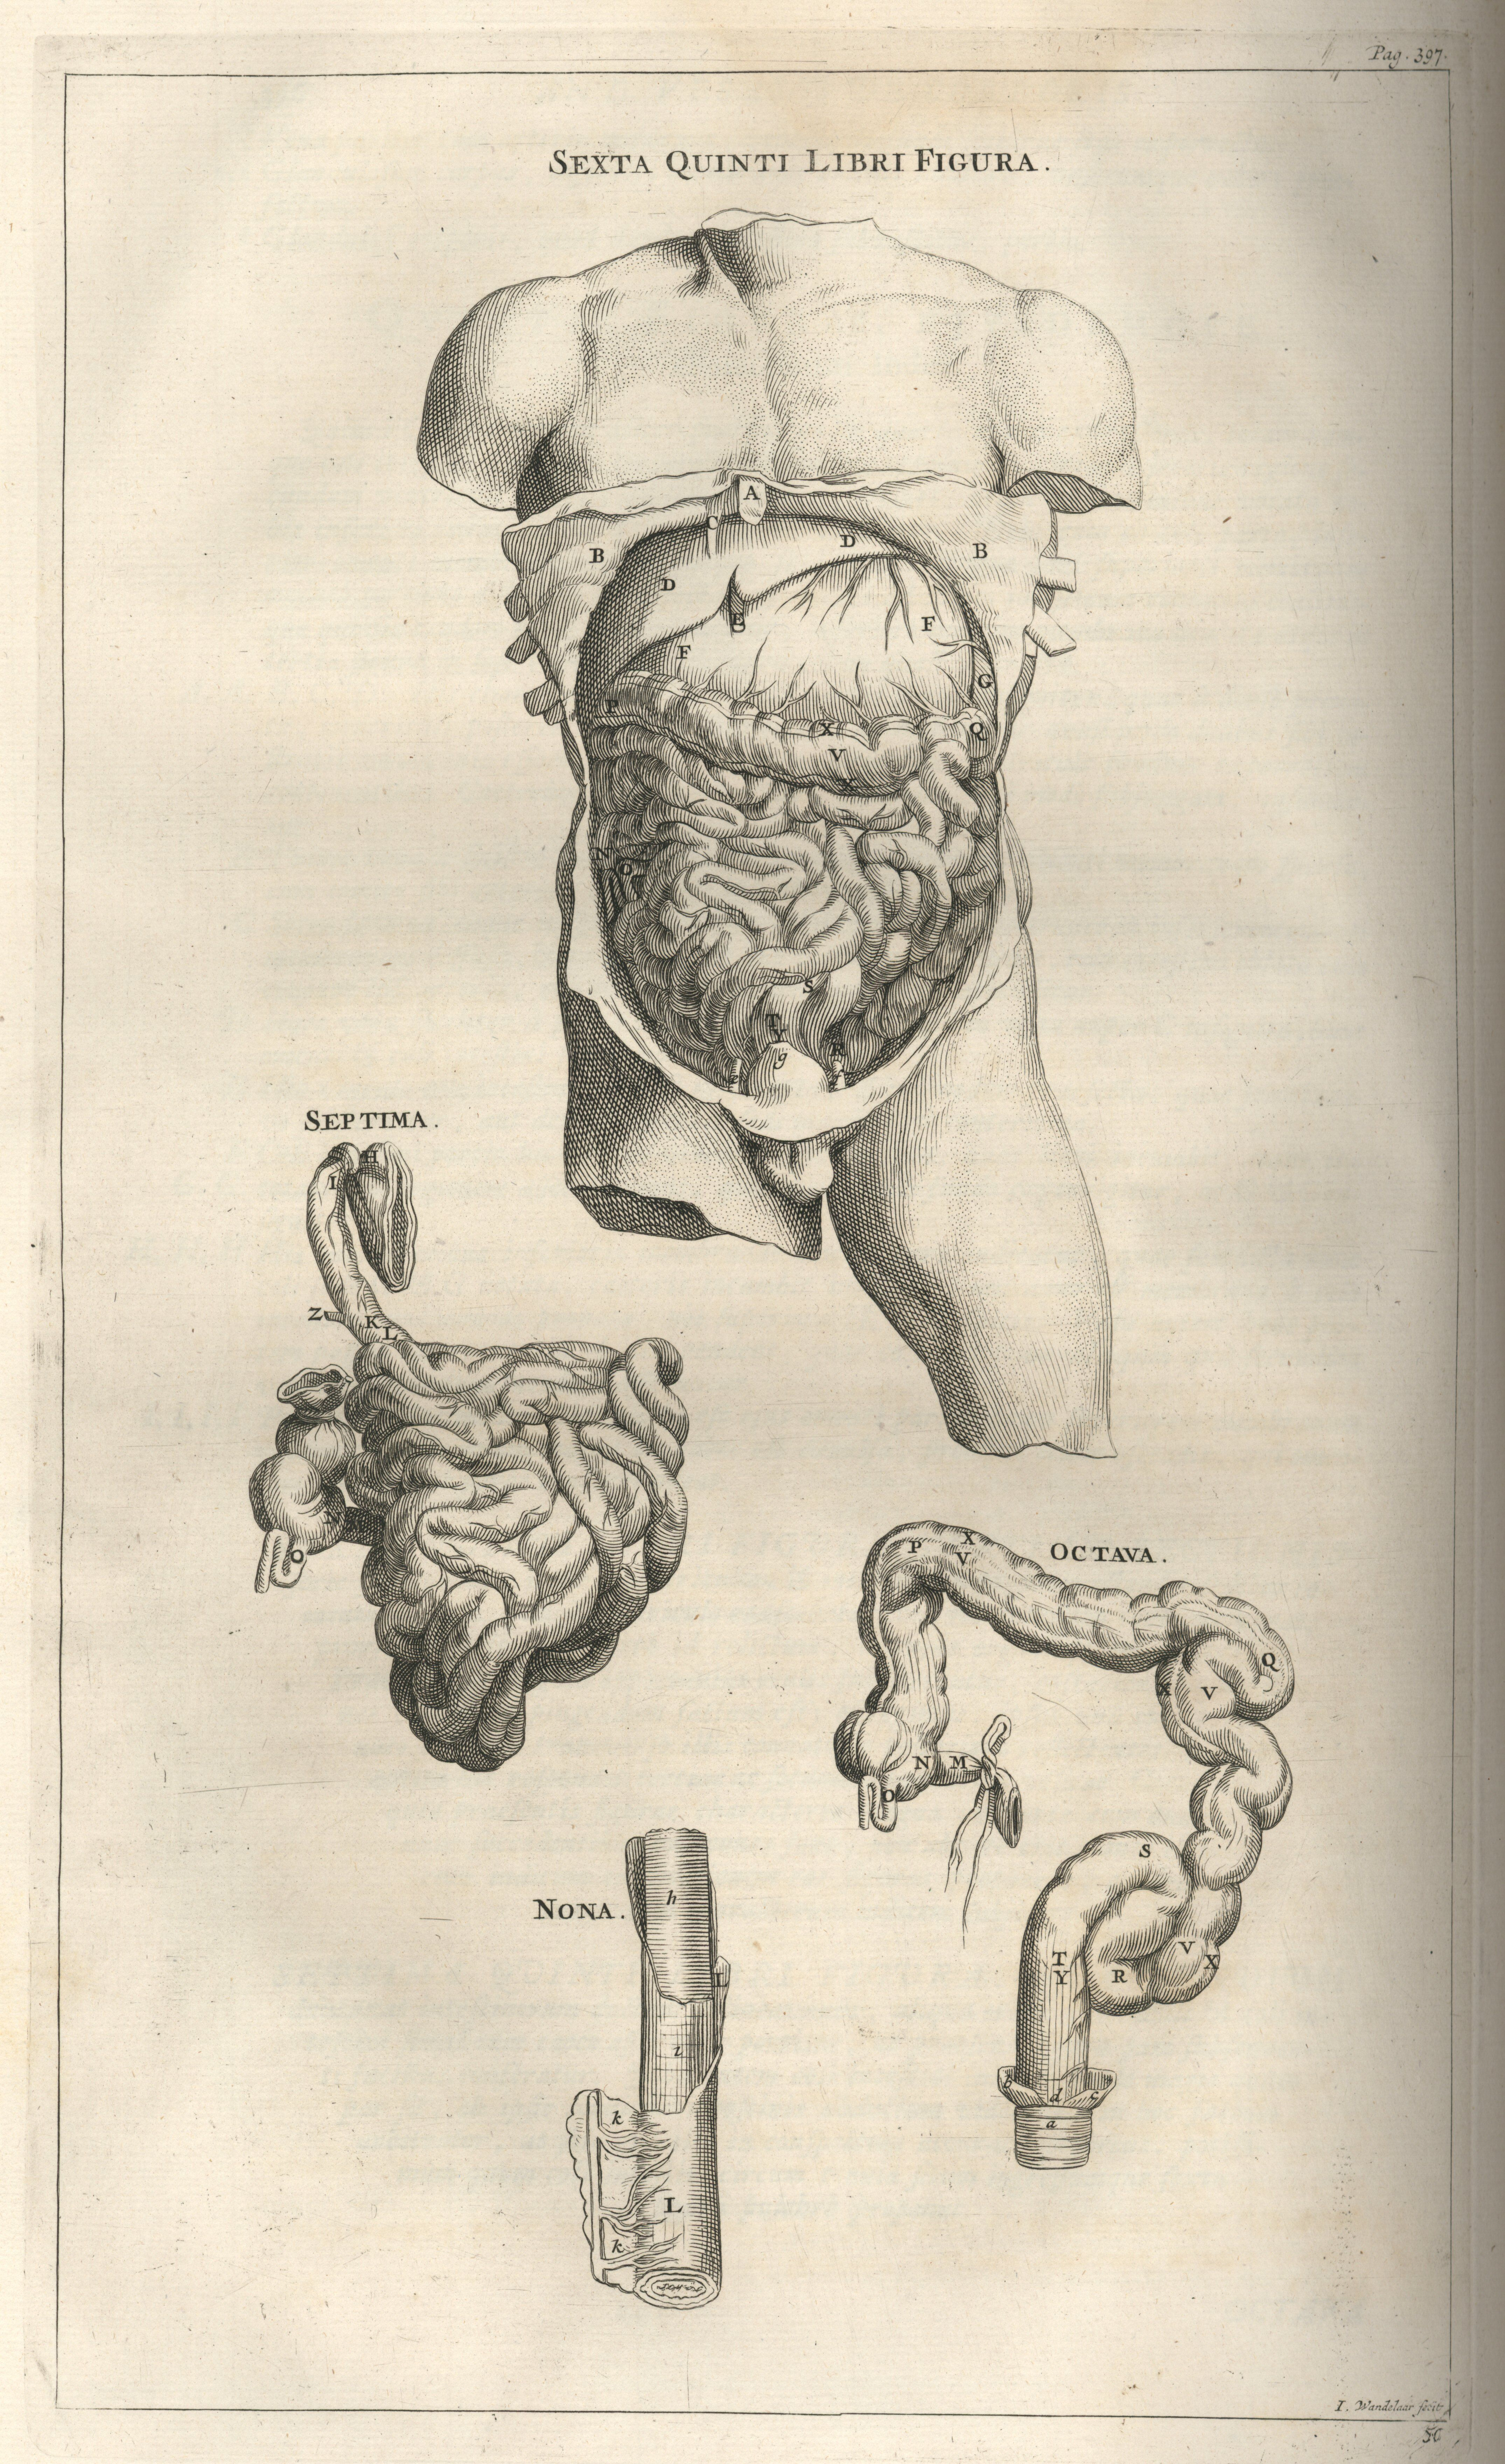 andreas vesalius and anatomy essay Read this full essay on andreas vesalius and anatomy andreas vesalius is  perhaps one of the first and greatest anatomists he set a great amount of the  fram.